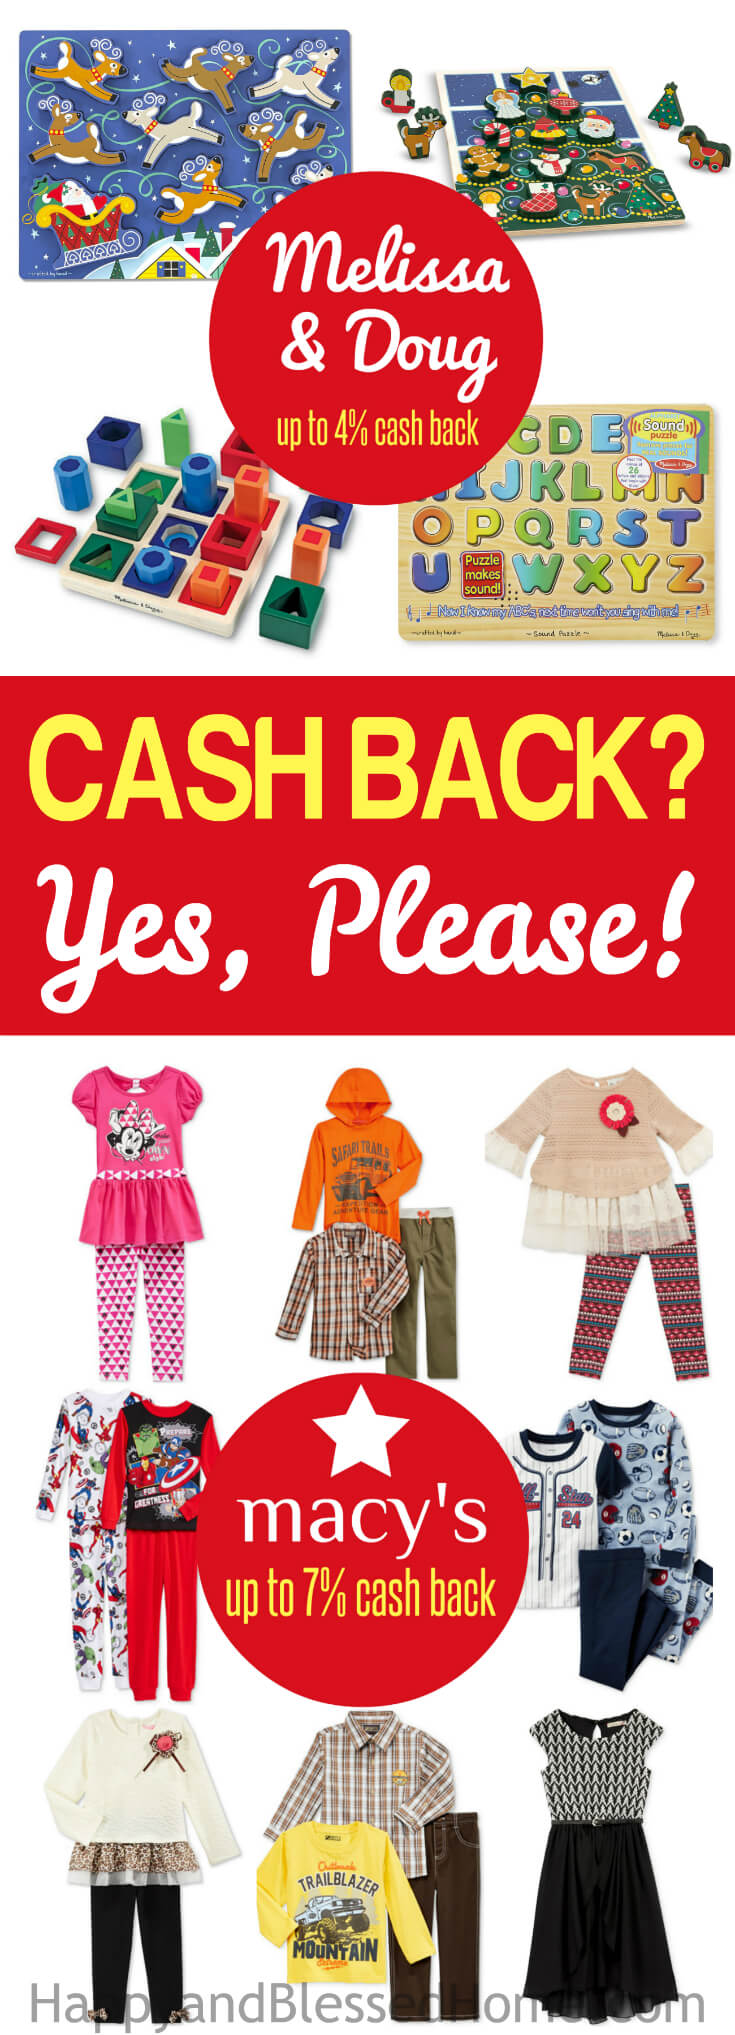 cash-back-on-your-my-favorite-online-purchases-yes-please